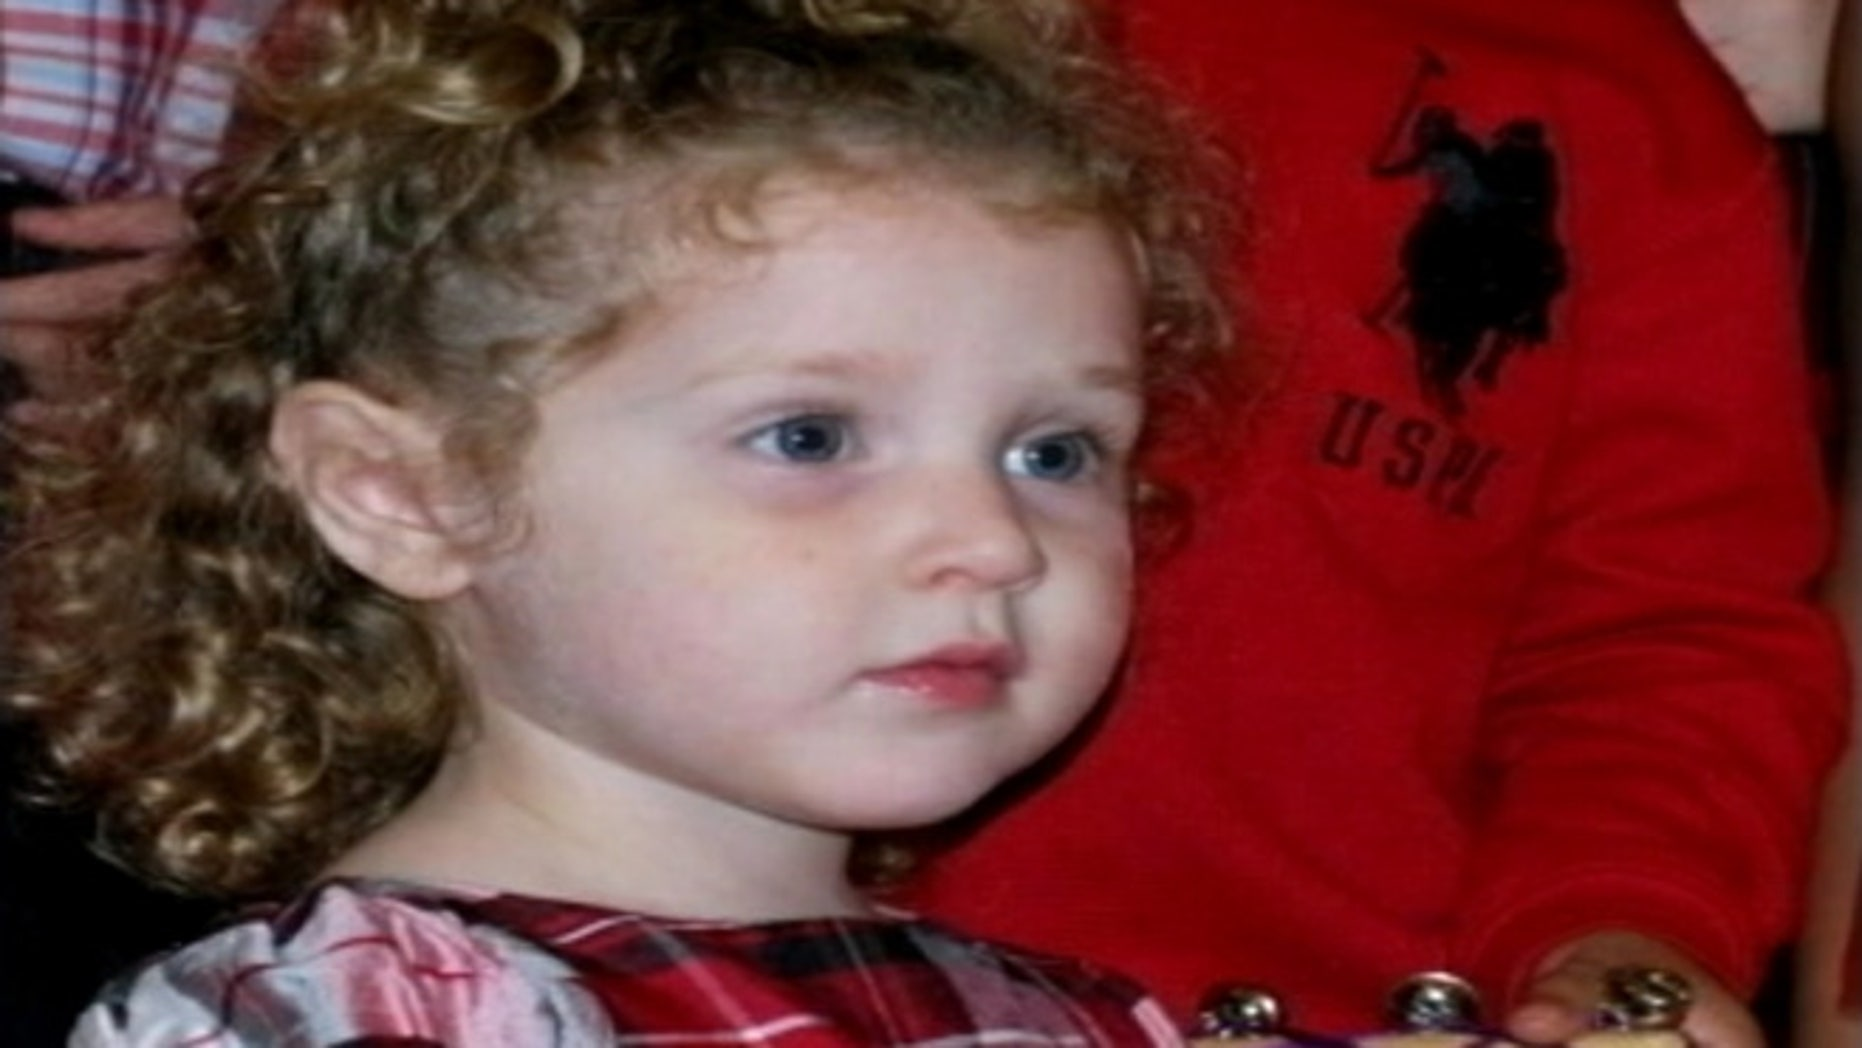 Ireland Nugent, 2, is reportedly doing well after surgery in a Tampa Bay hospital.